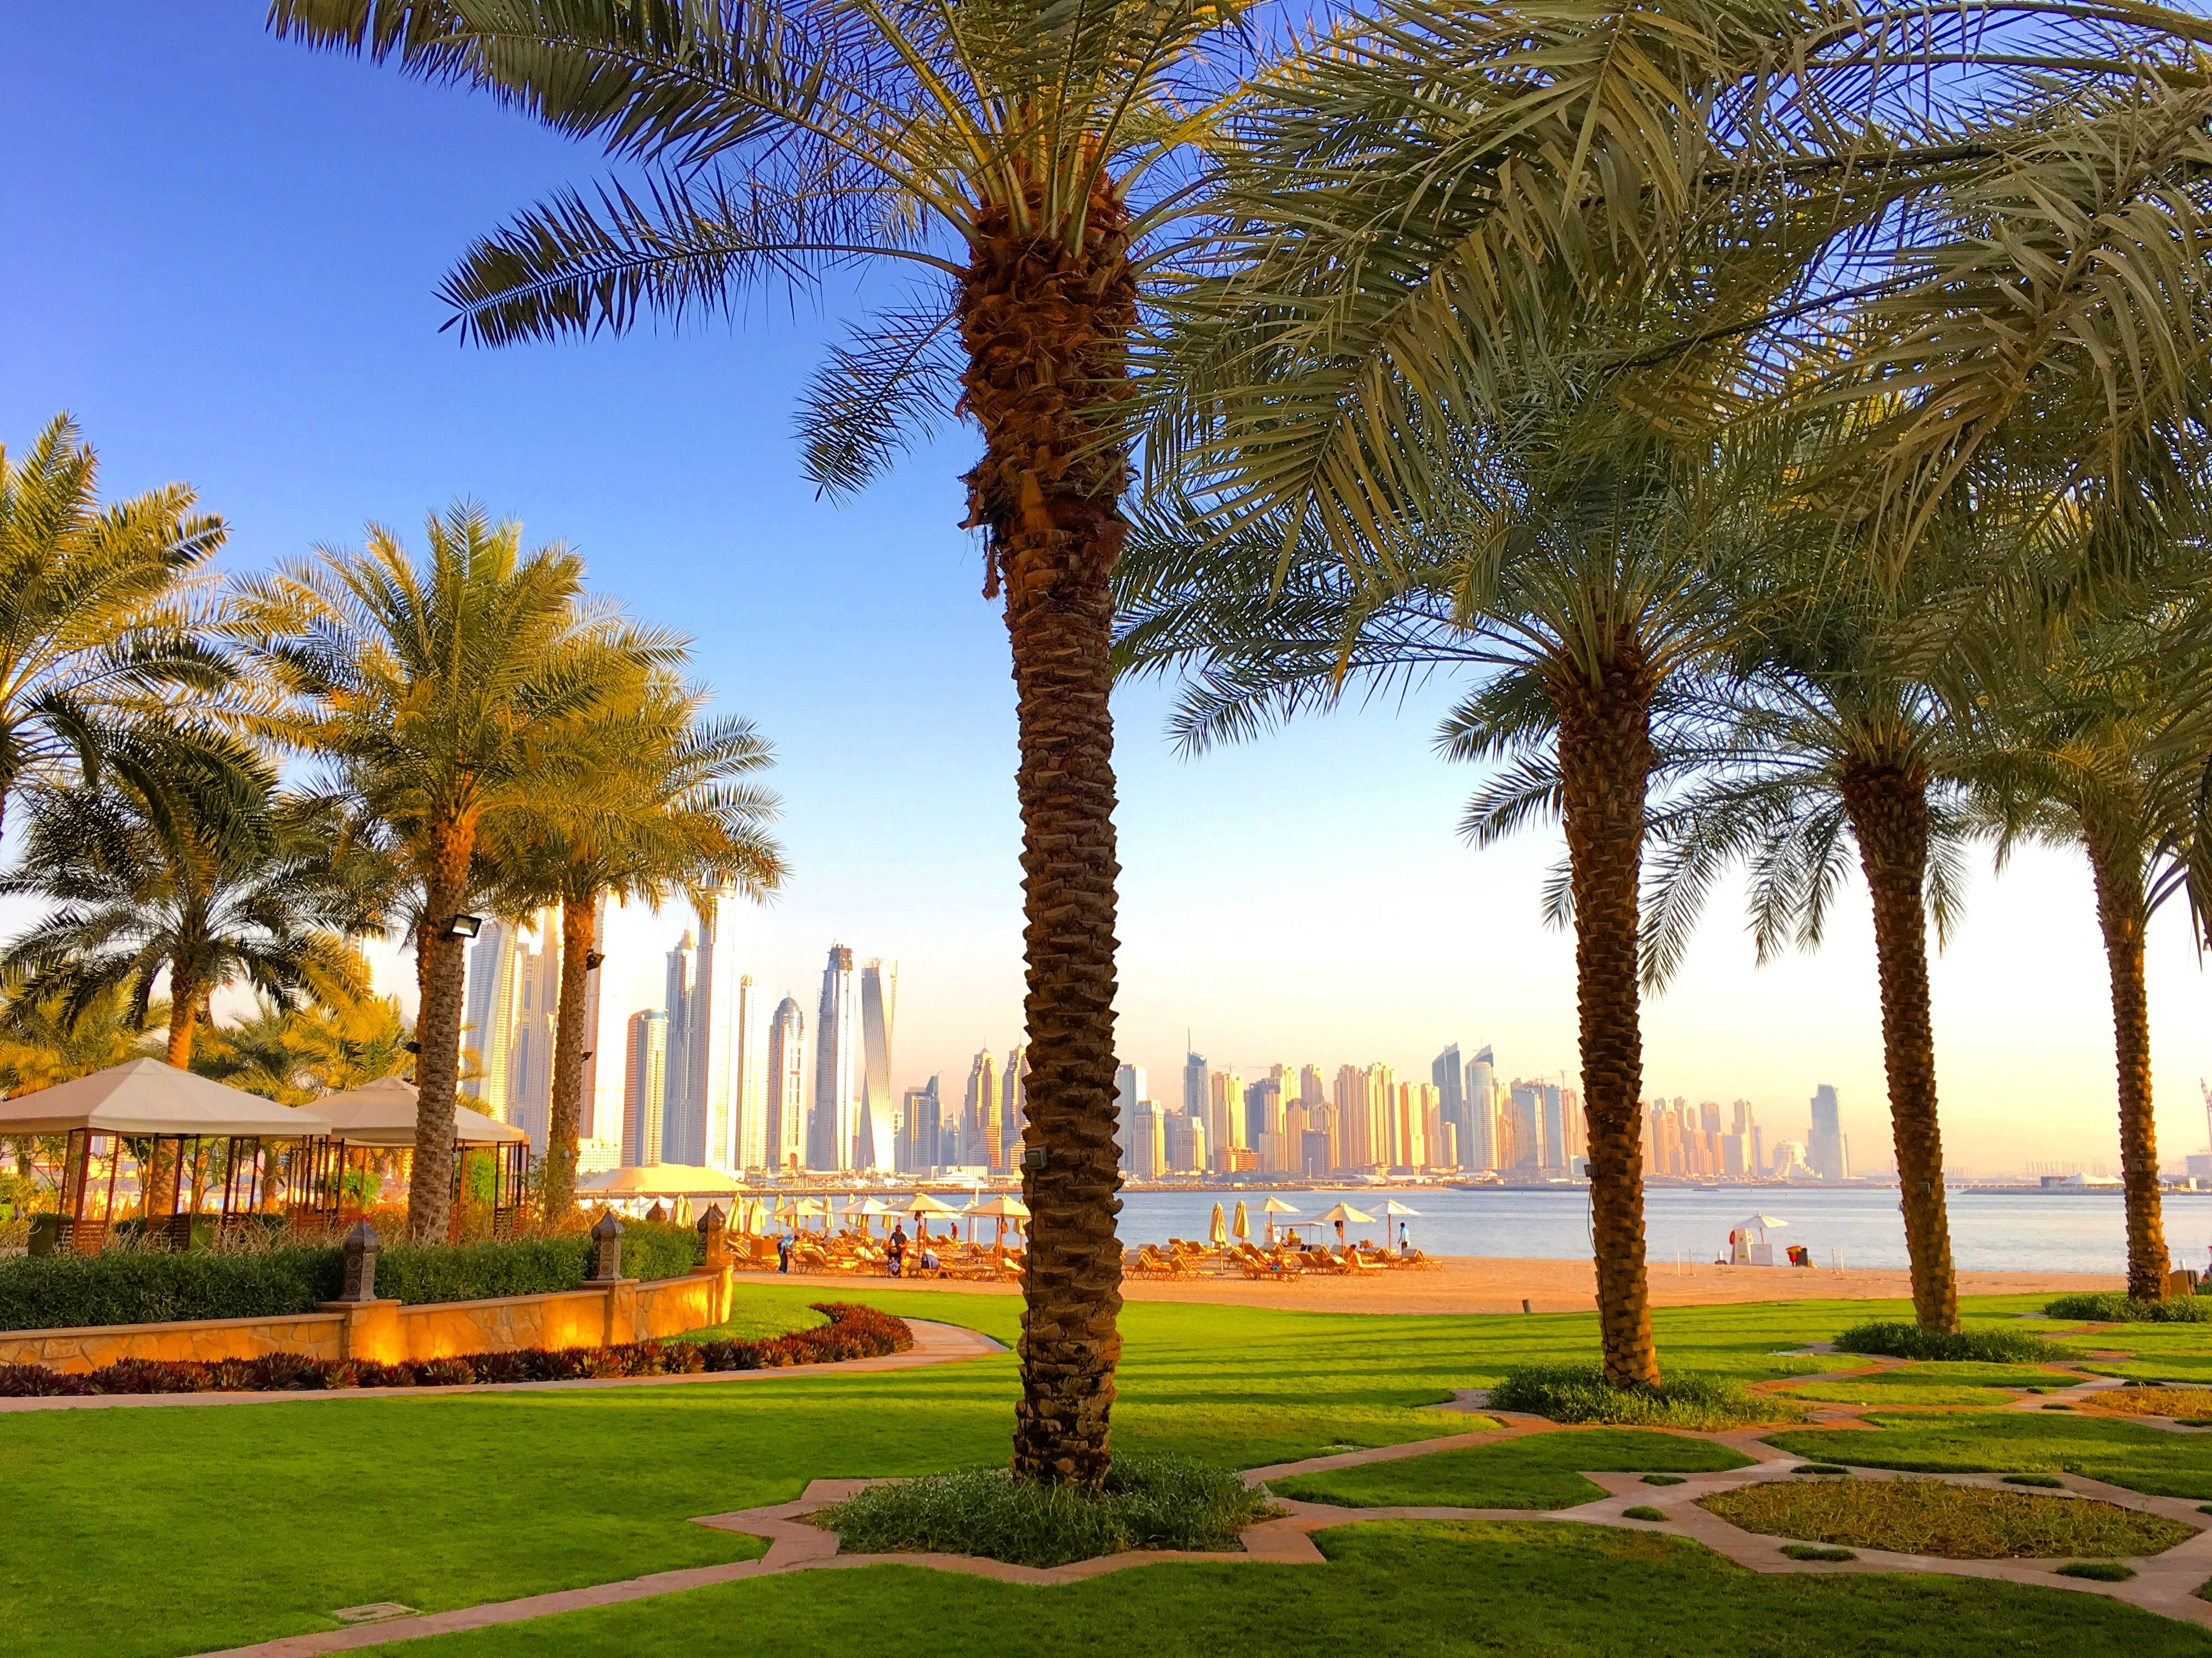 The Ultimate Dubai Trip Planner – 1 Day, 3 Day and 5 Day Itineraries